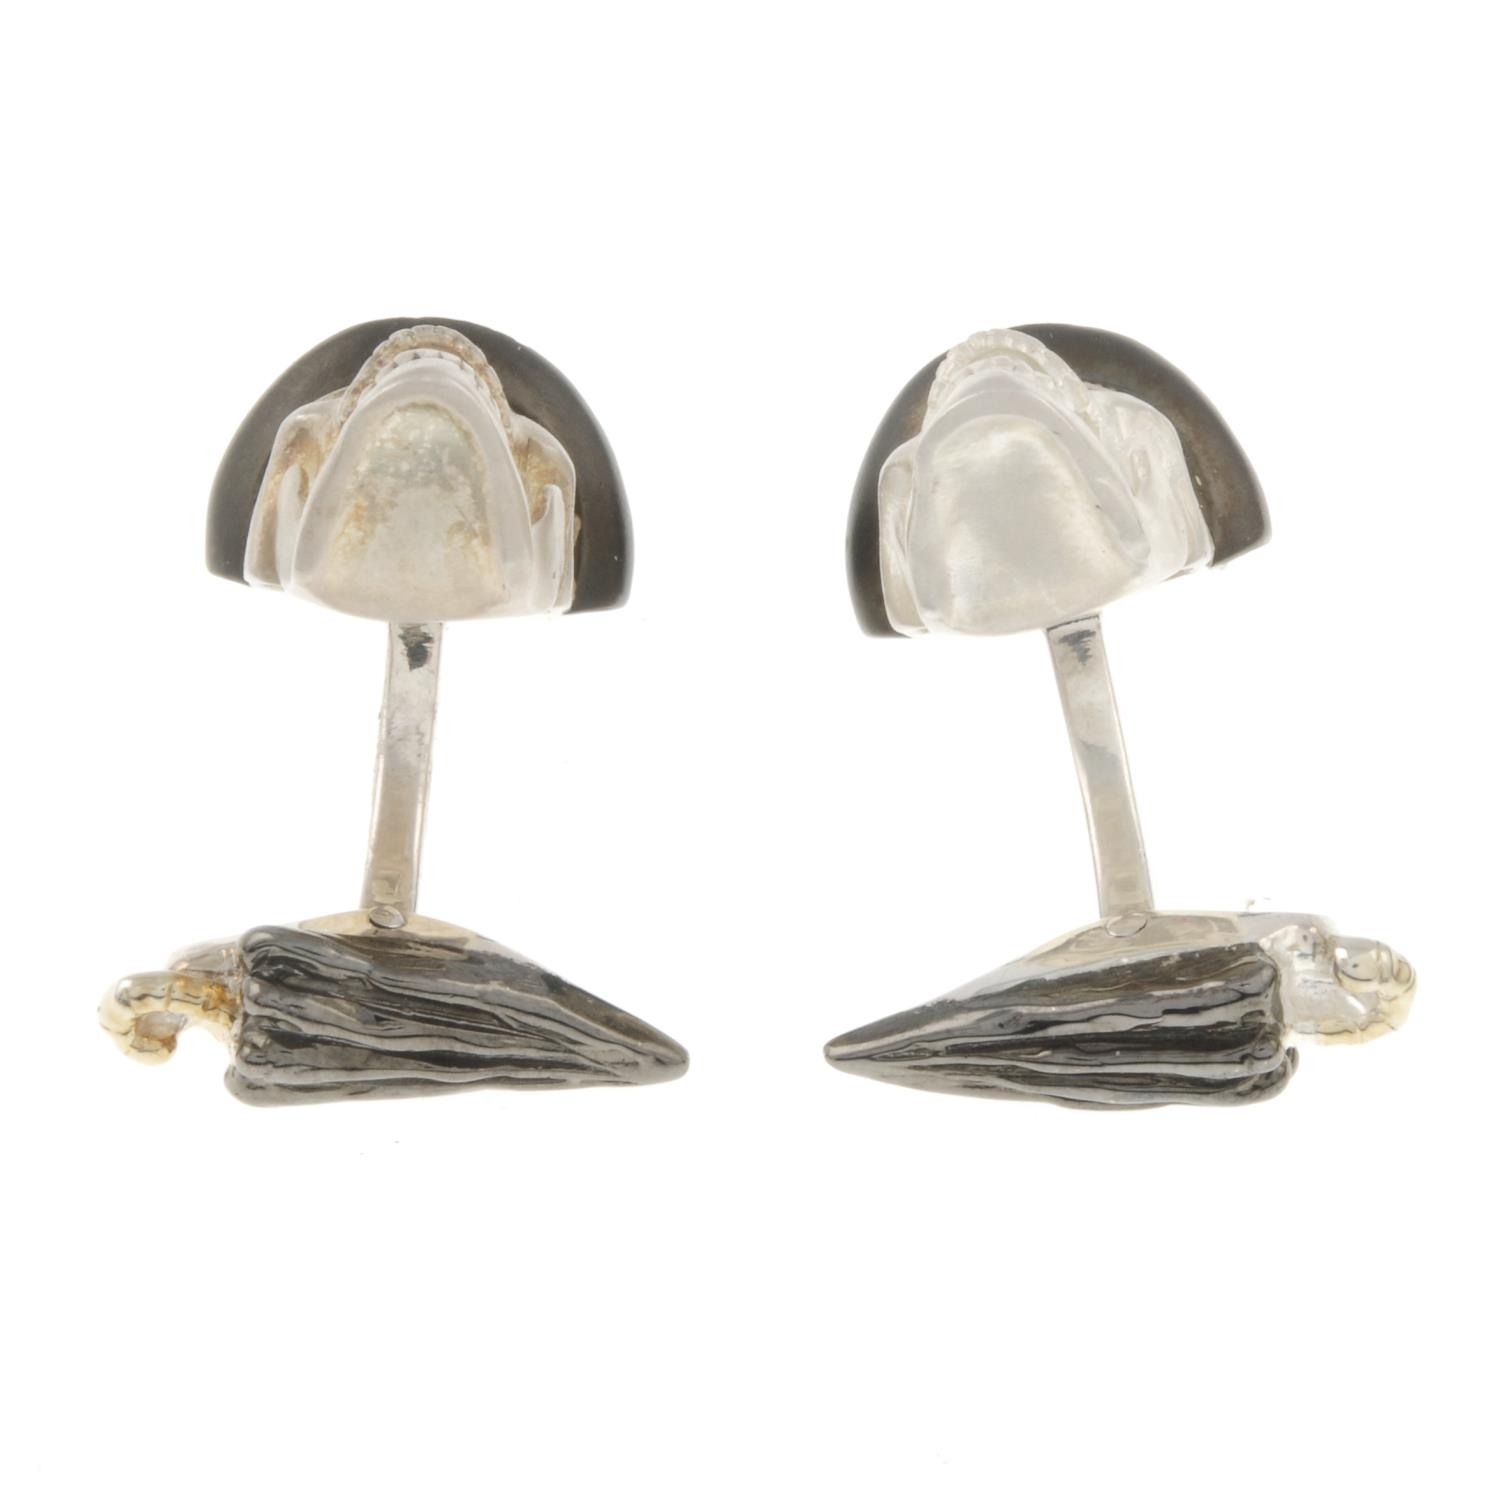 A pair of silver skull cufflinks, with articulated jaw and ruby eyes, by Deakin and Francis. - Image 3 of 3